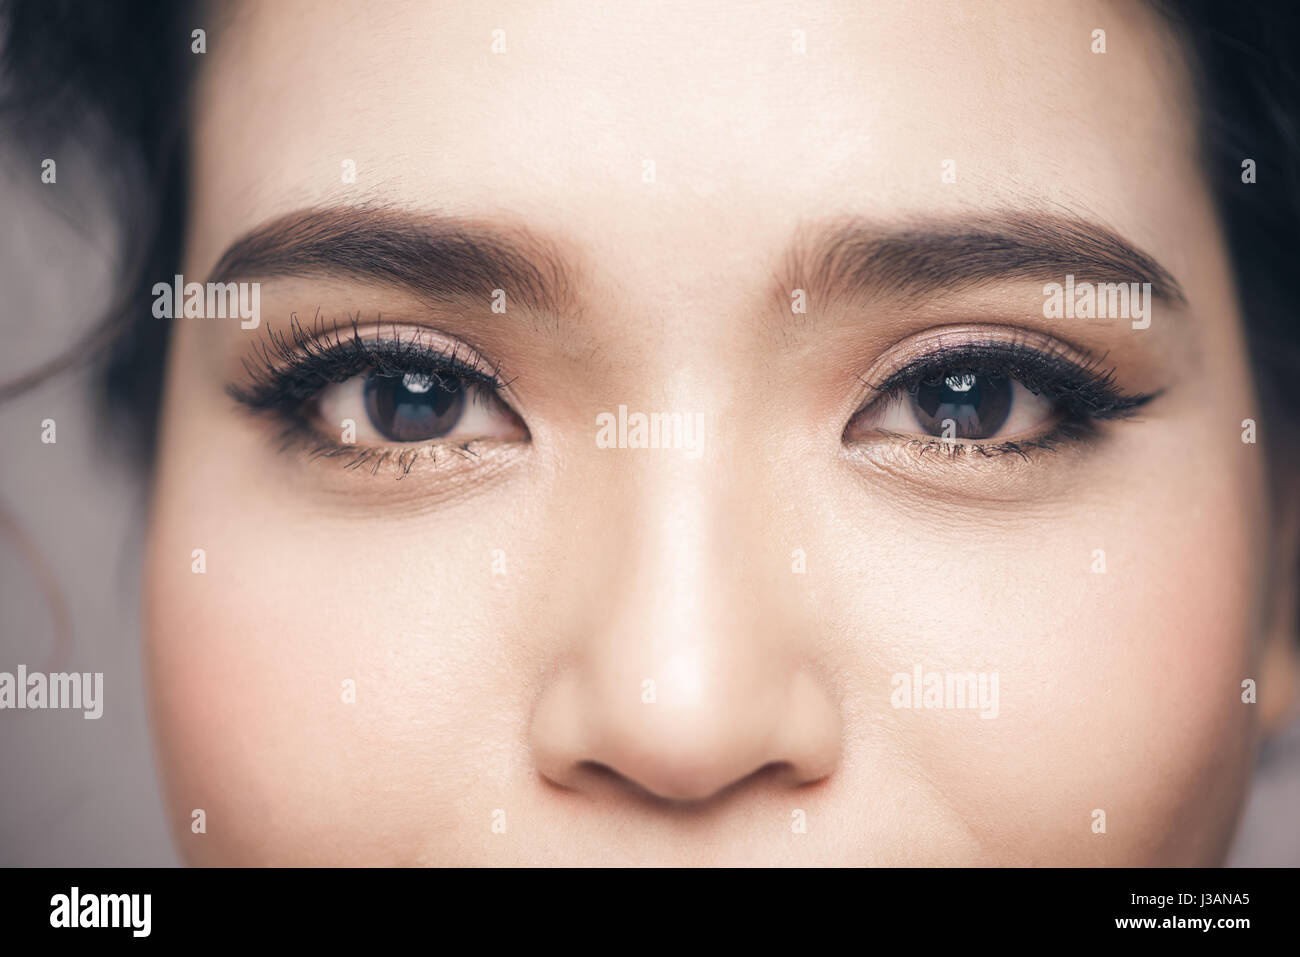 6d49327b43d Asian model eye close-up with long eyelashes. Selective focus Stock ...